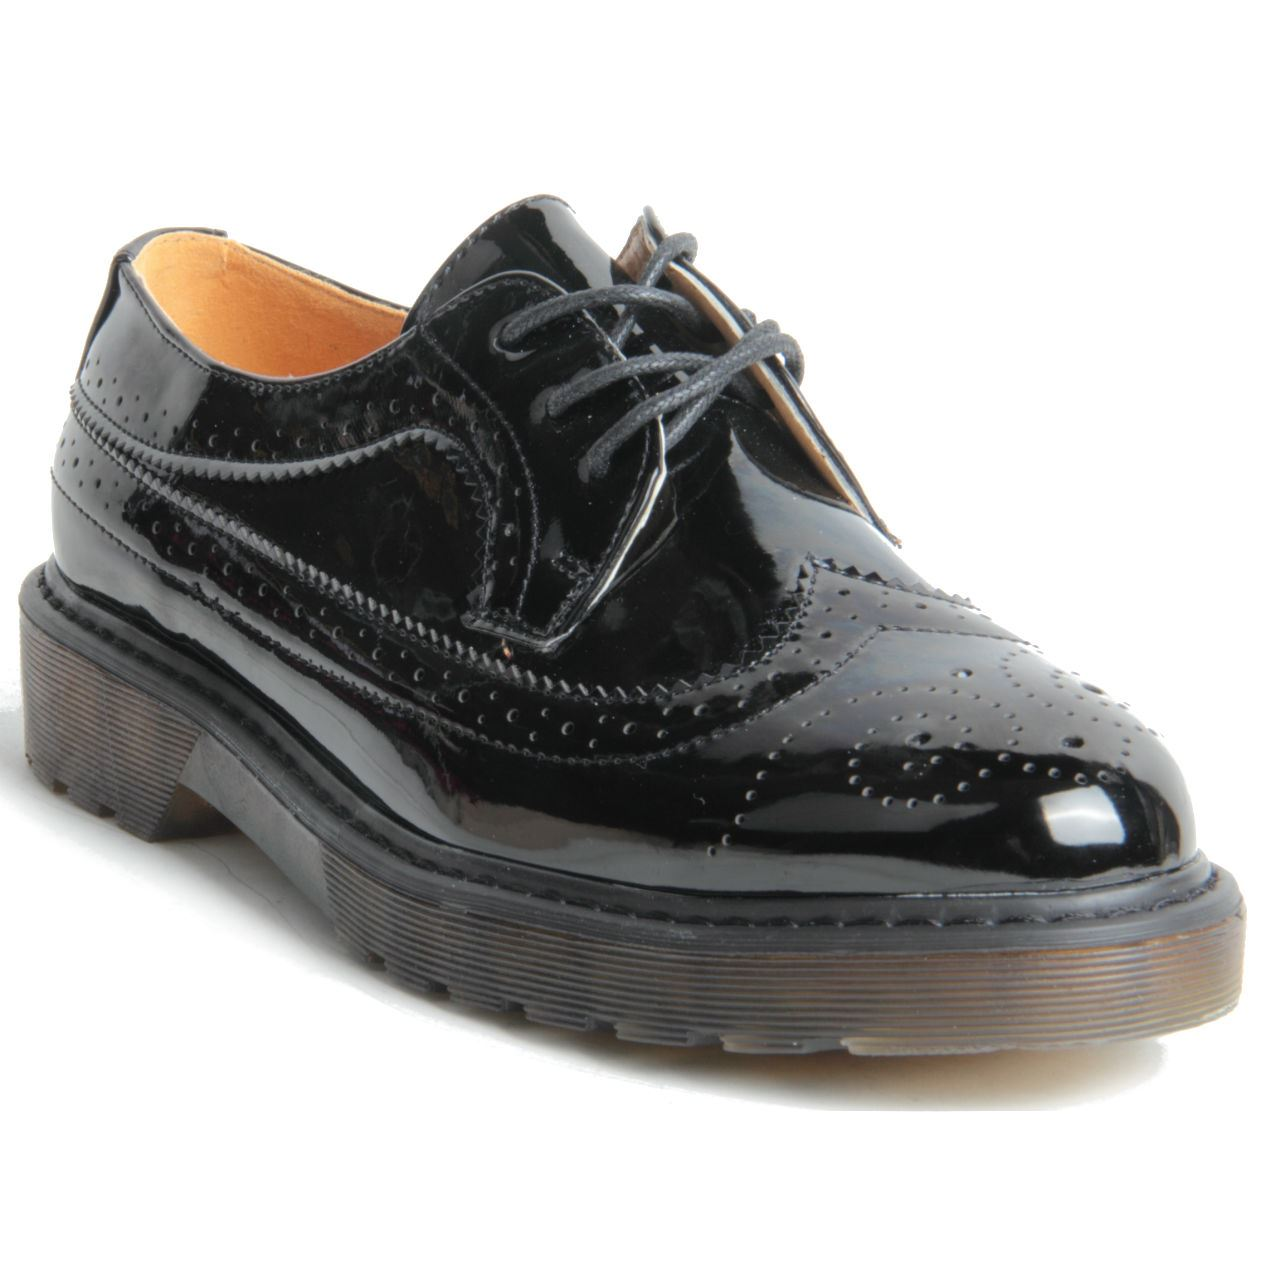 chunky platform sole lace up oxford brogue shoes